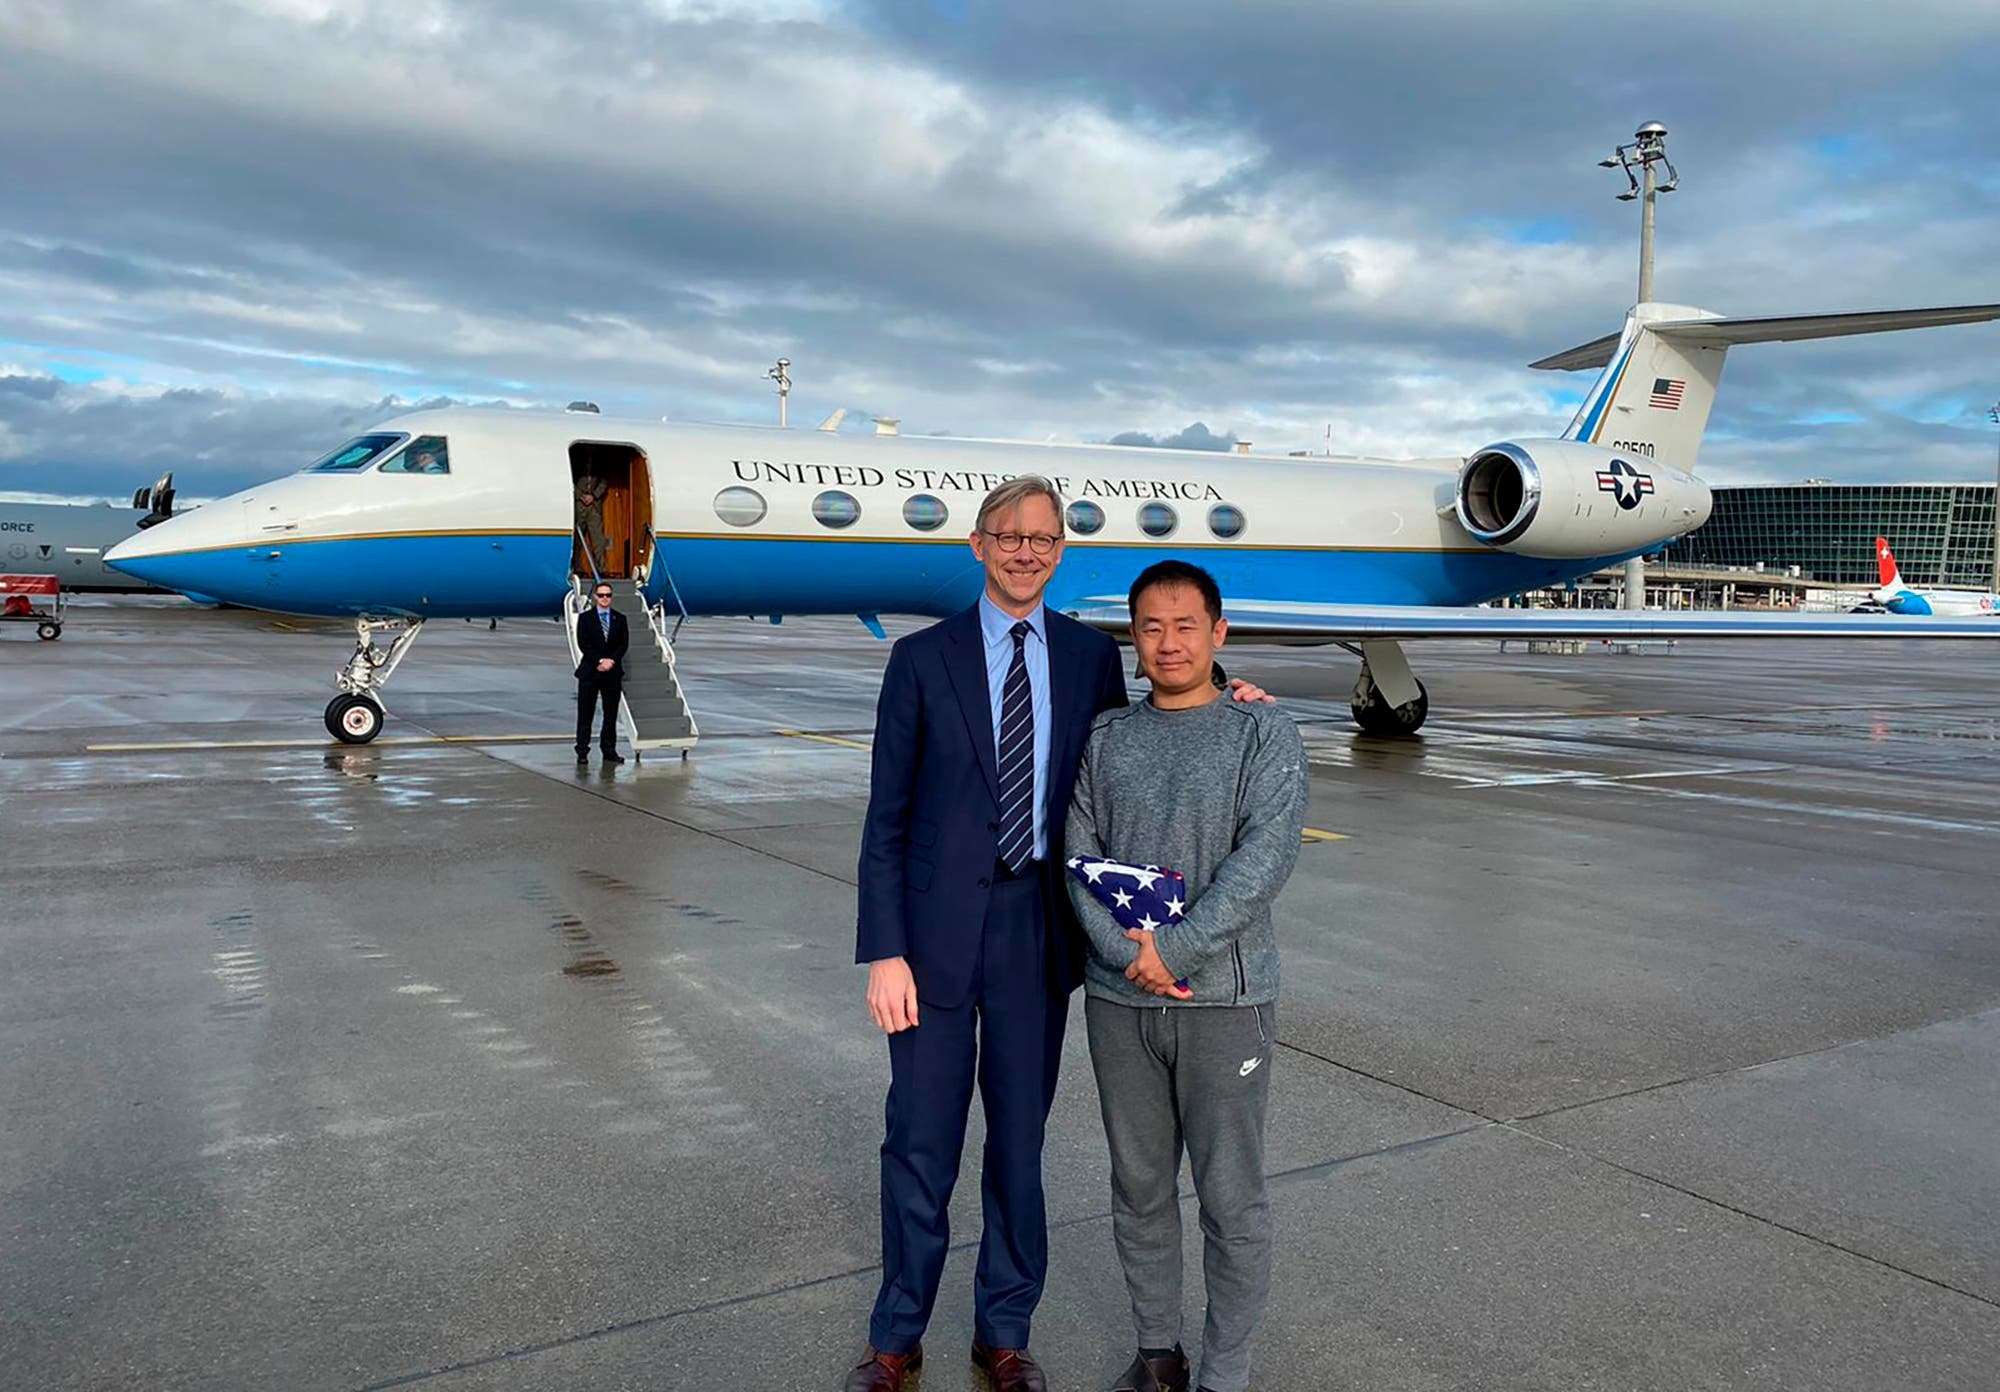 U.S. special representative for Iran, Brian Hook stands with Xiyue Wang in Zurich, Switzerland on Saturday, Dec. 7, 2019. (AP)